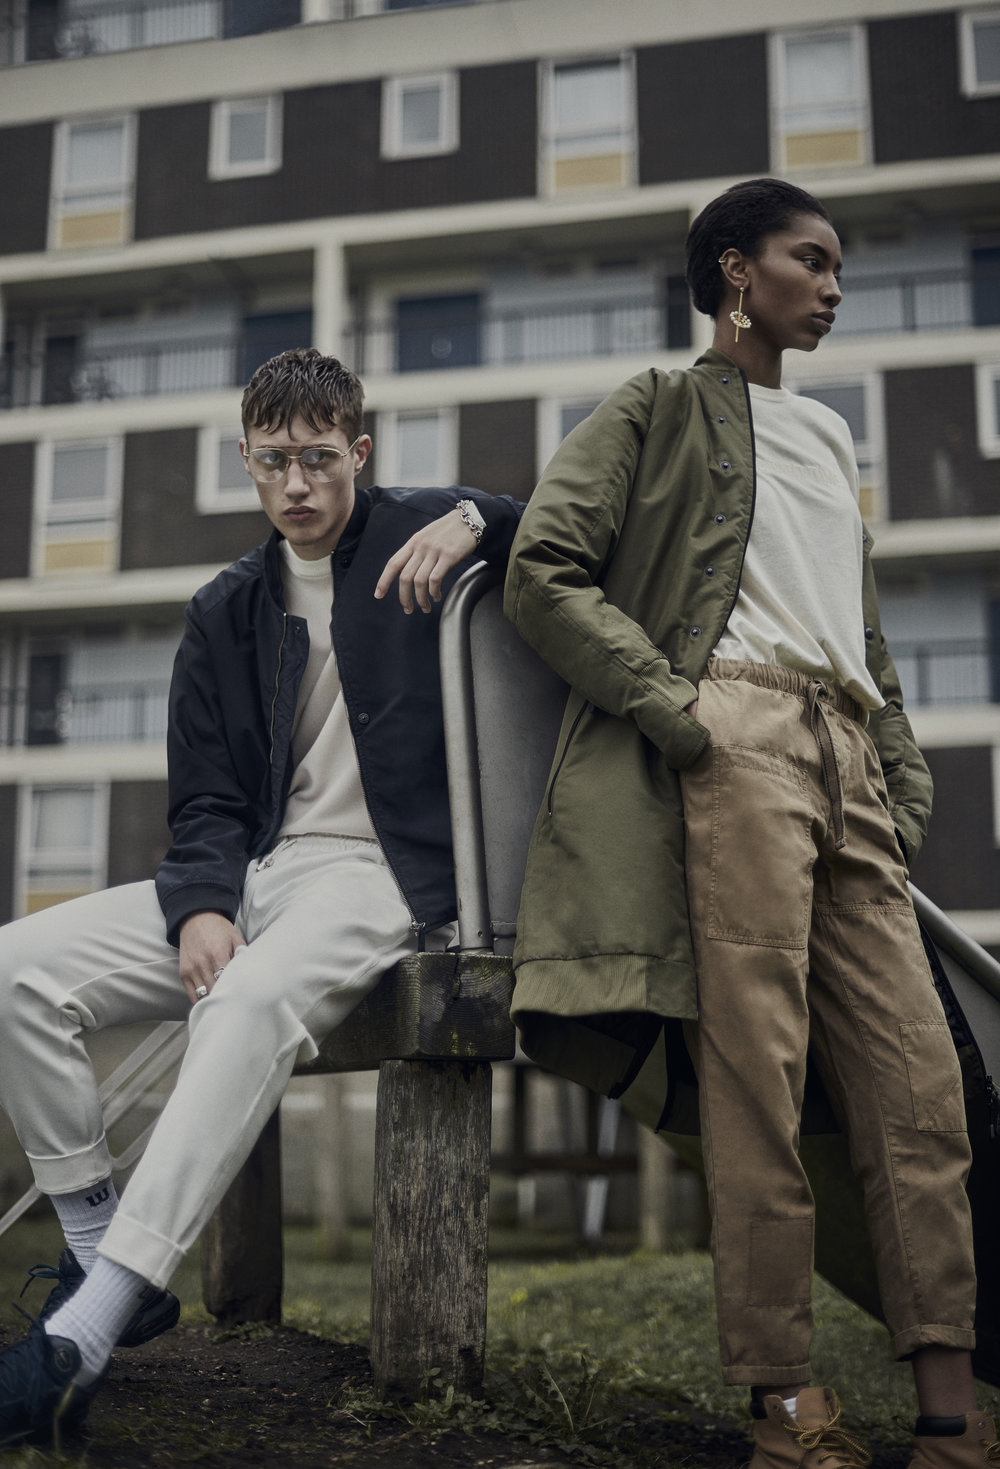 NOTION MAGAZINE'London Habits'  - London's concrete estates have inspired countless works of art and culture over their history. A melting point between the city's architectural past and it's modern inhabitants, it's that spirit that Dan Knott and Chloe Cammidge channel in their new editorial London Habits. Set around the city, muted tones and inner-city staples combine to create a contemporary editorial that still manages capture elements of London's past. Photography Dan KnottStyling Chloe CammidgeHair William WebbMakeup Quelle MaquilleurModels Roman @ Premier London & Kiara @ D1 Models